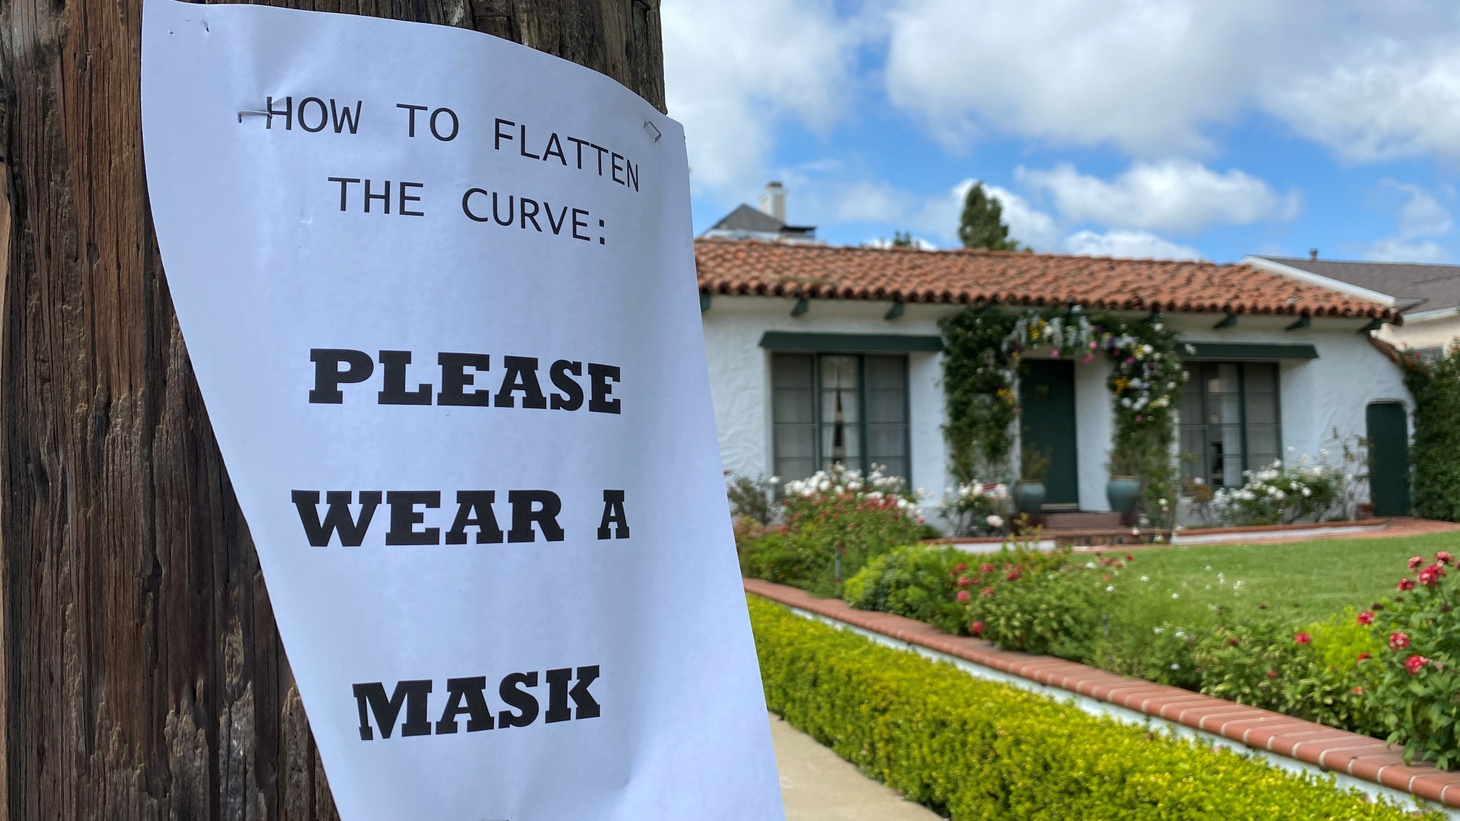 A Los Angeles neighborhood sign asks people to wear masks as the global spread of COVID-19 continues.